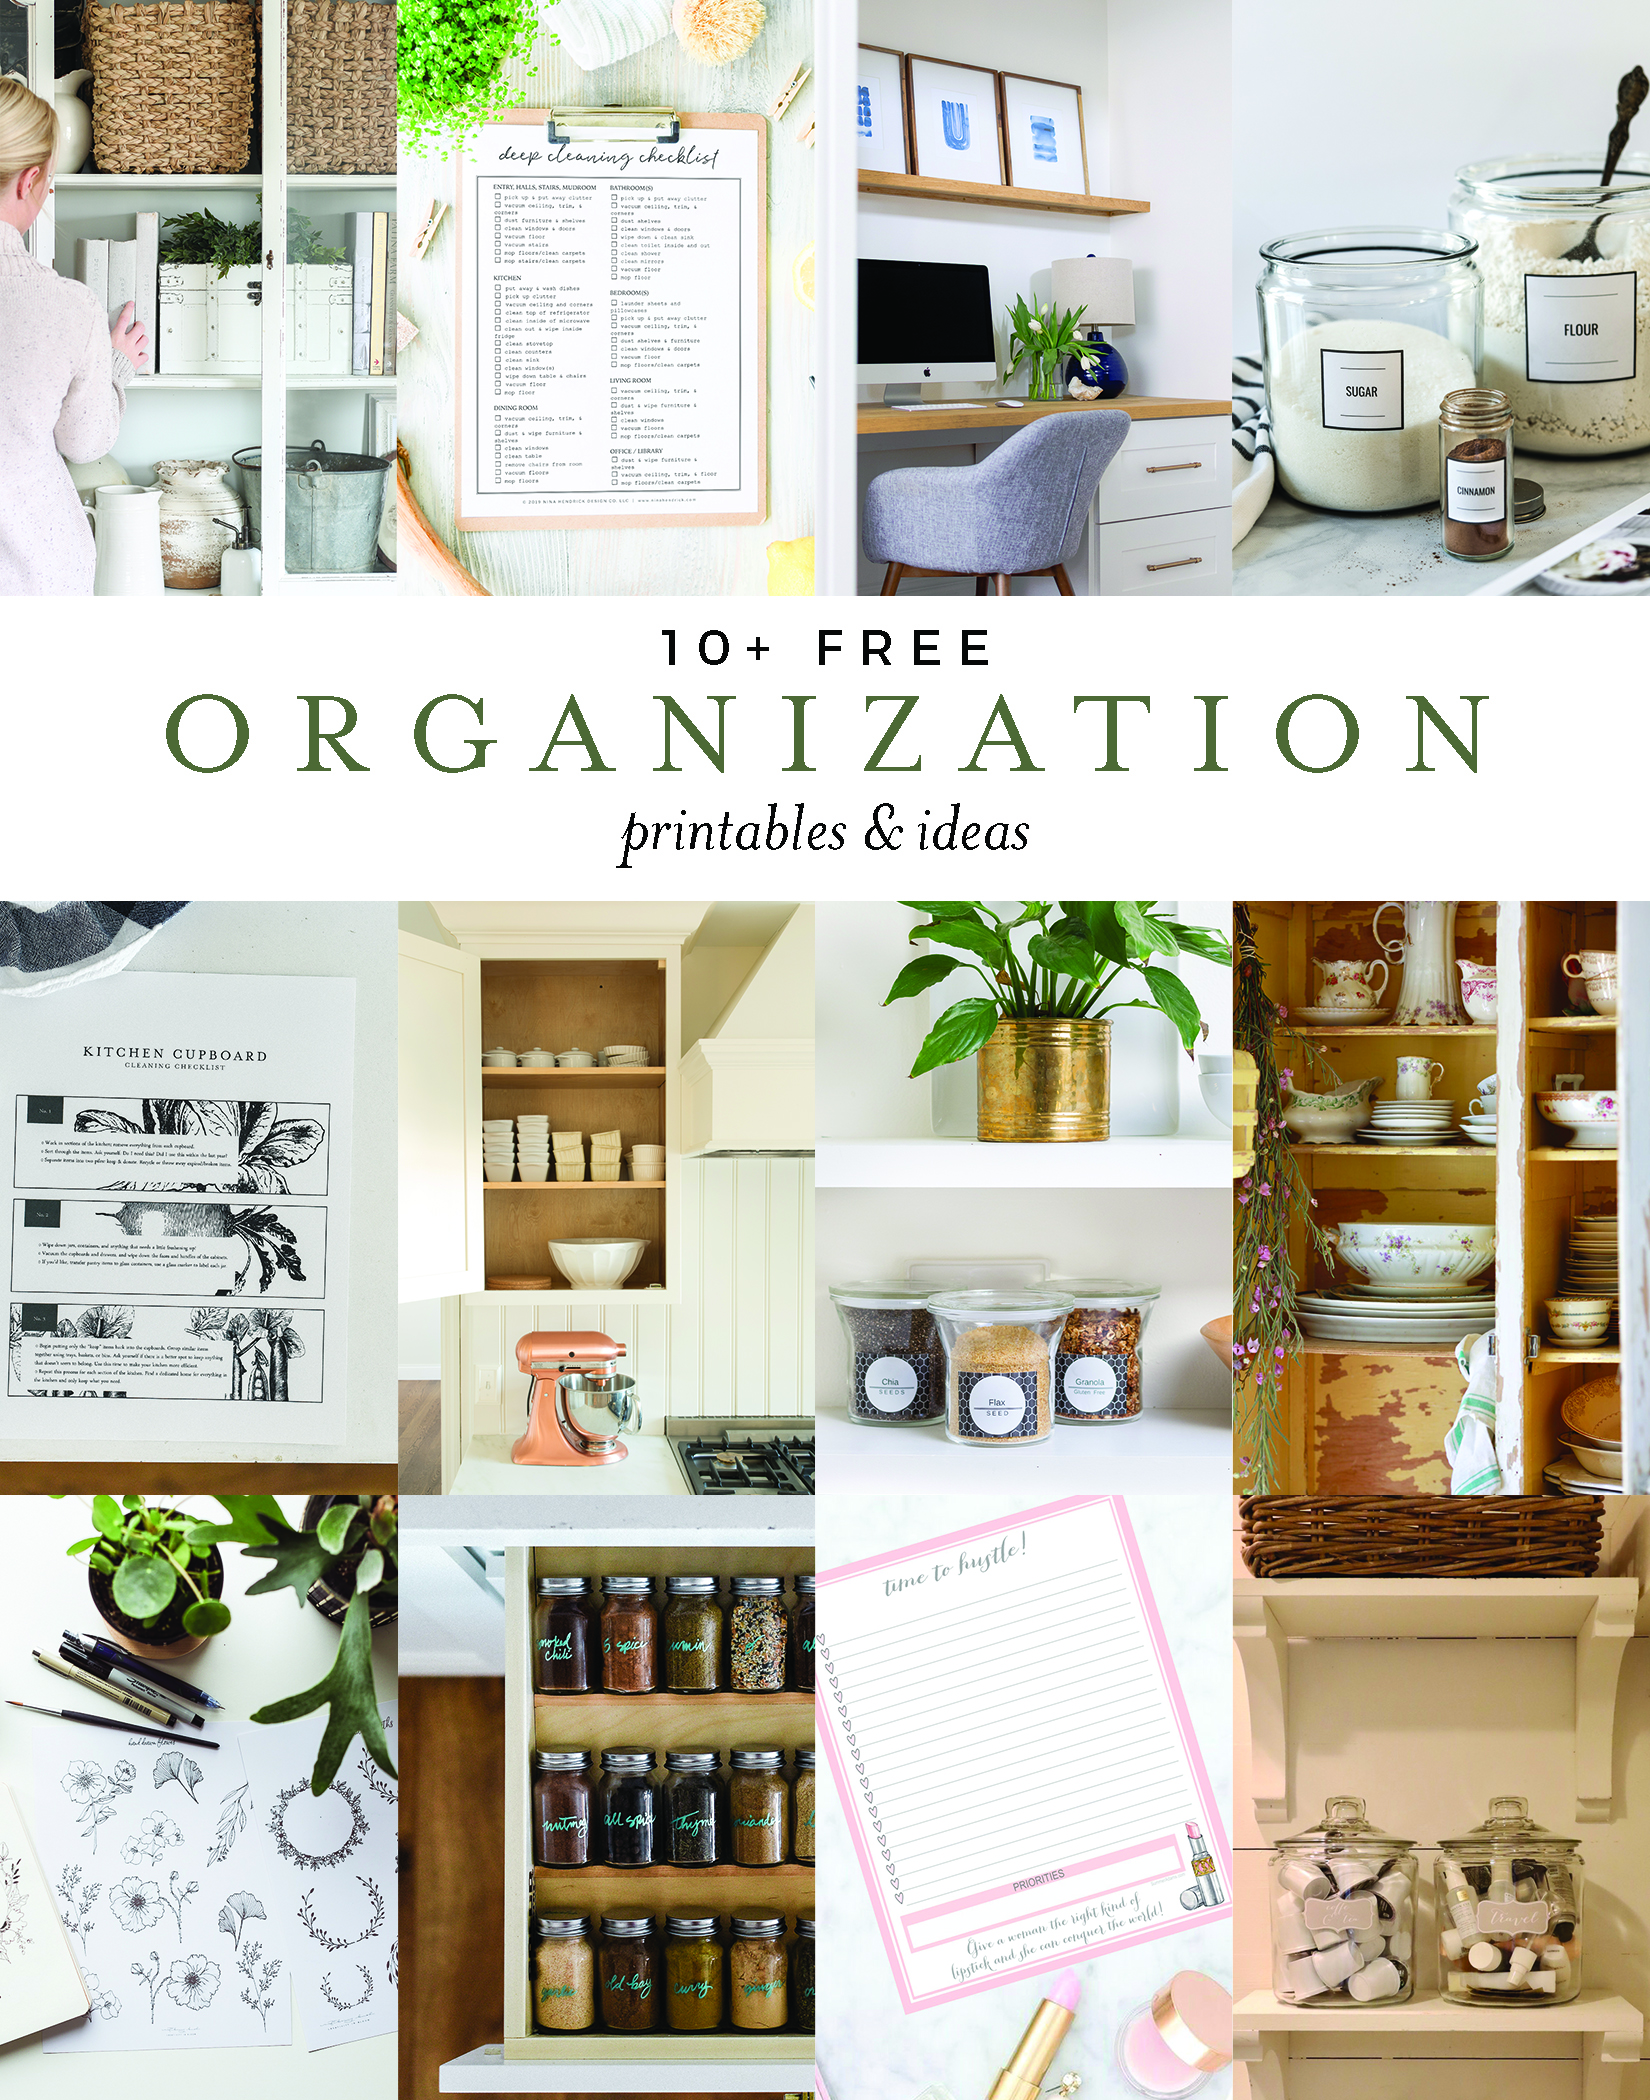 Over 10 genius organization tips and tricks with free printable to help organize your home! boxwoodavenue.com